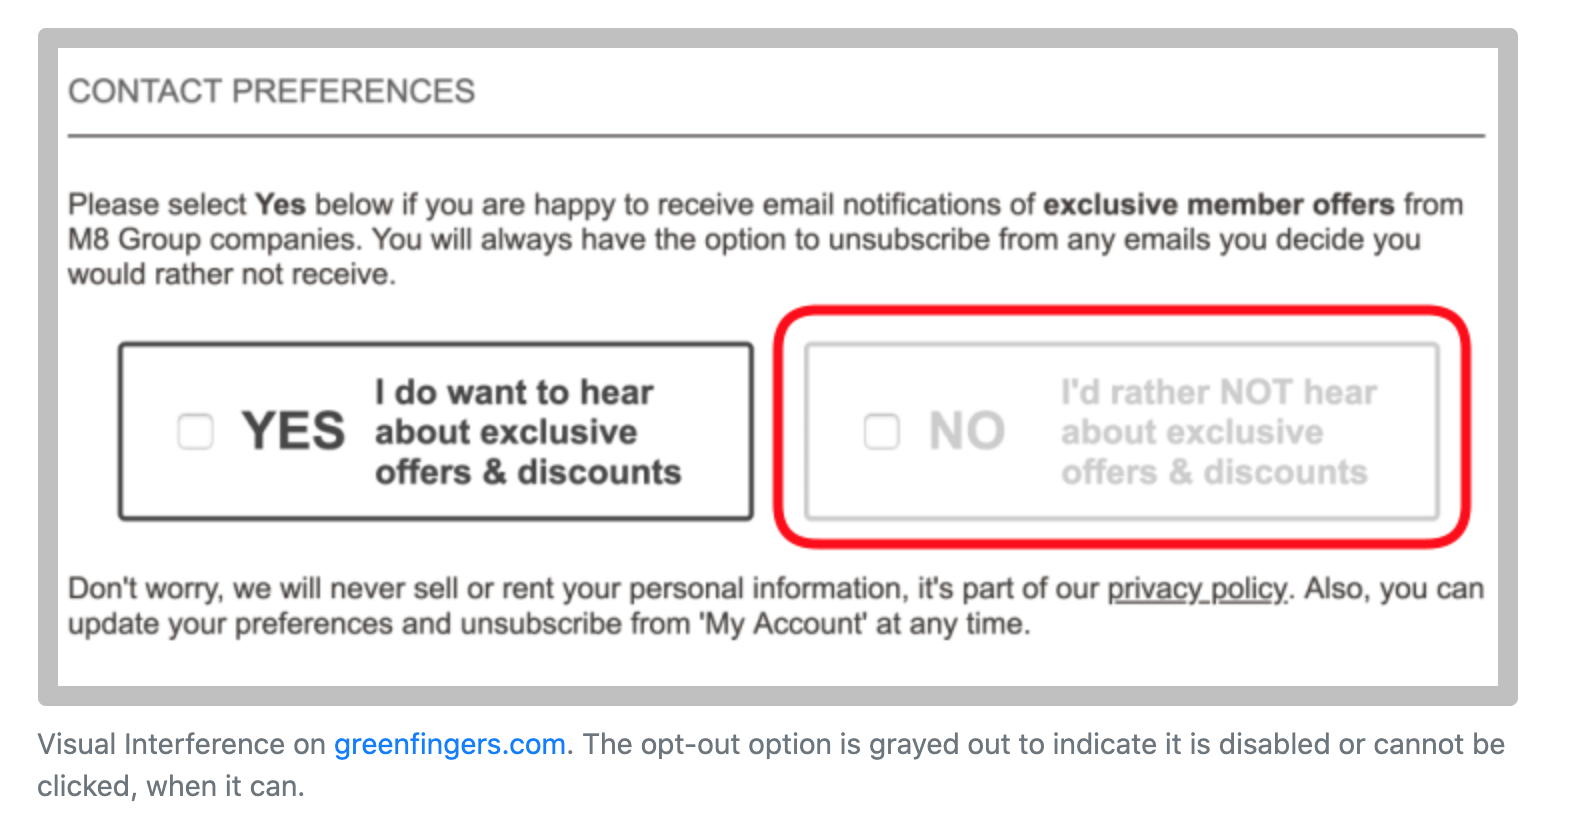 Visual Interference on greenfingers.com. The option to opt out of marketing communication is greyed, making it seem unavailable even though it can be clicked.